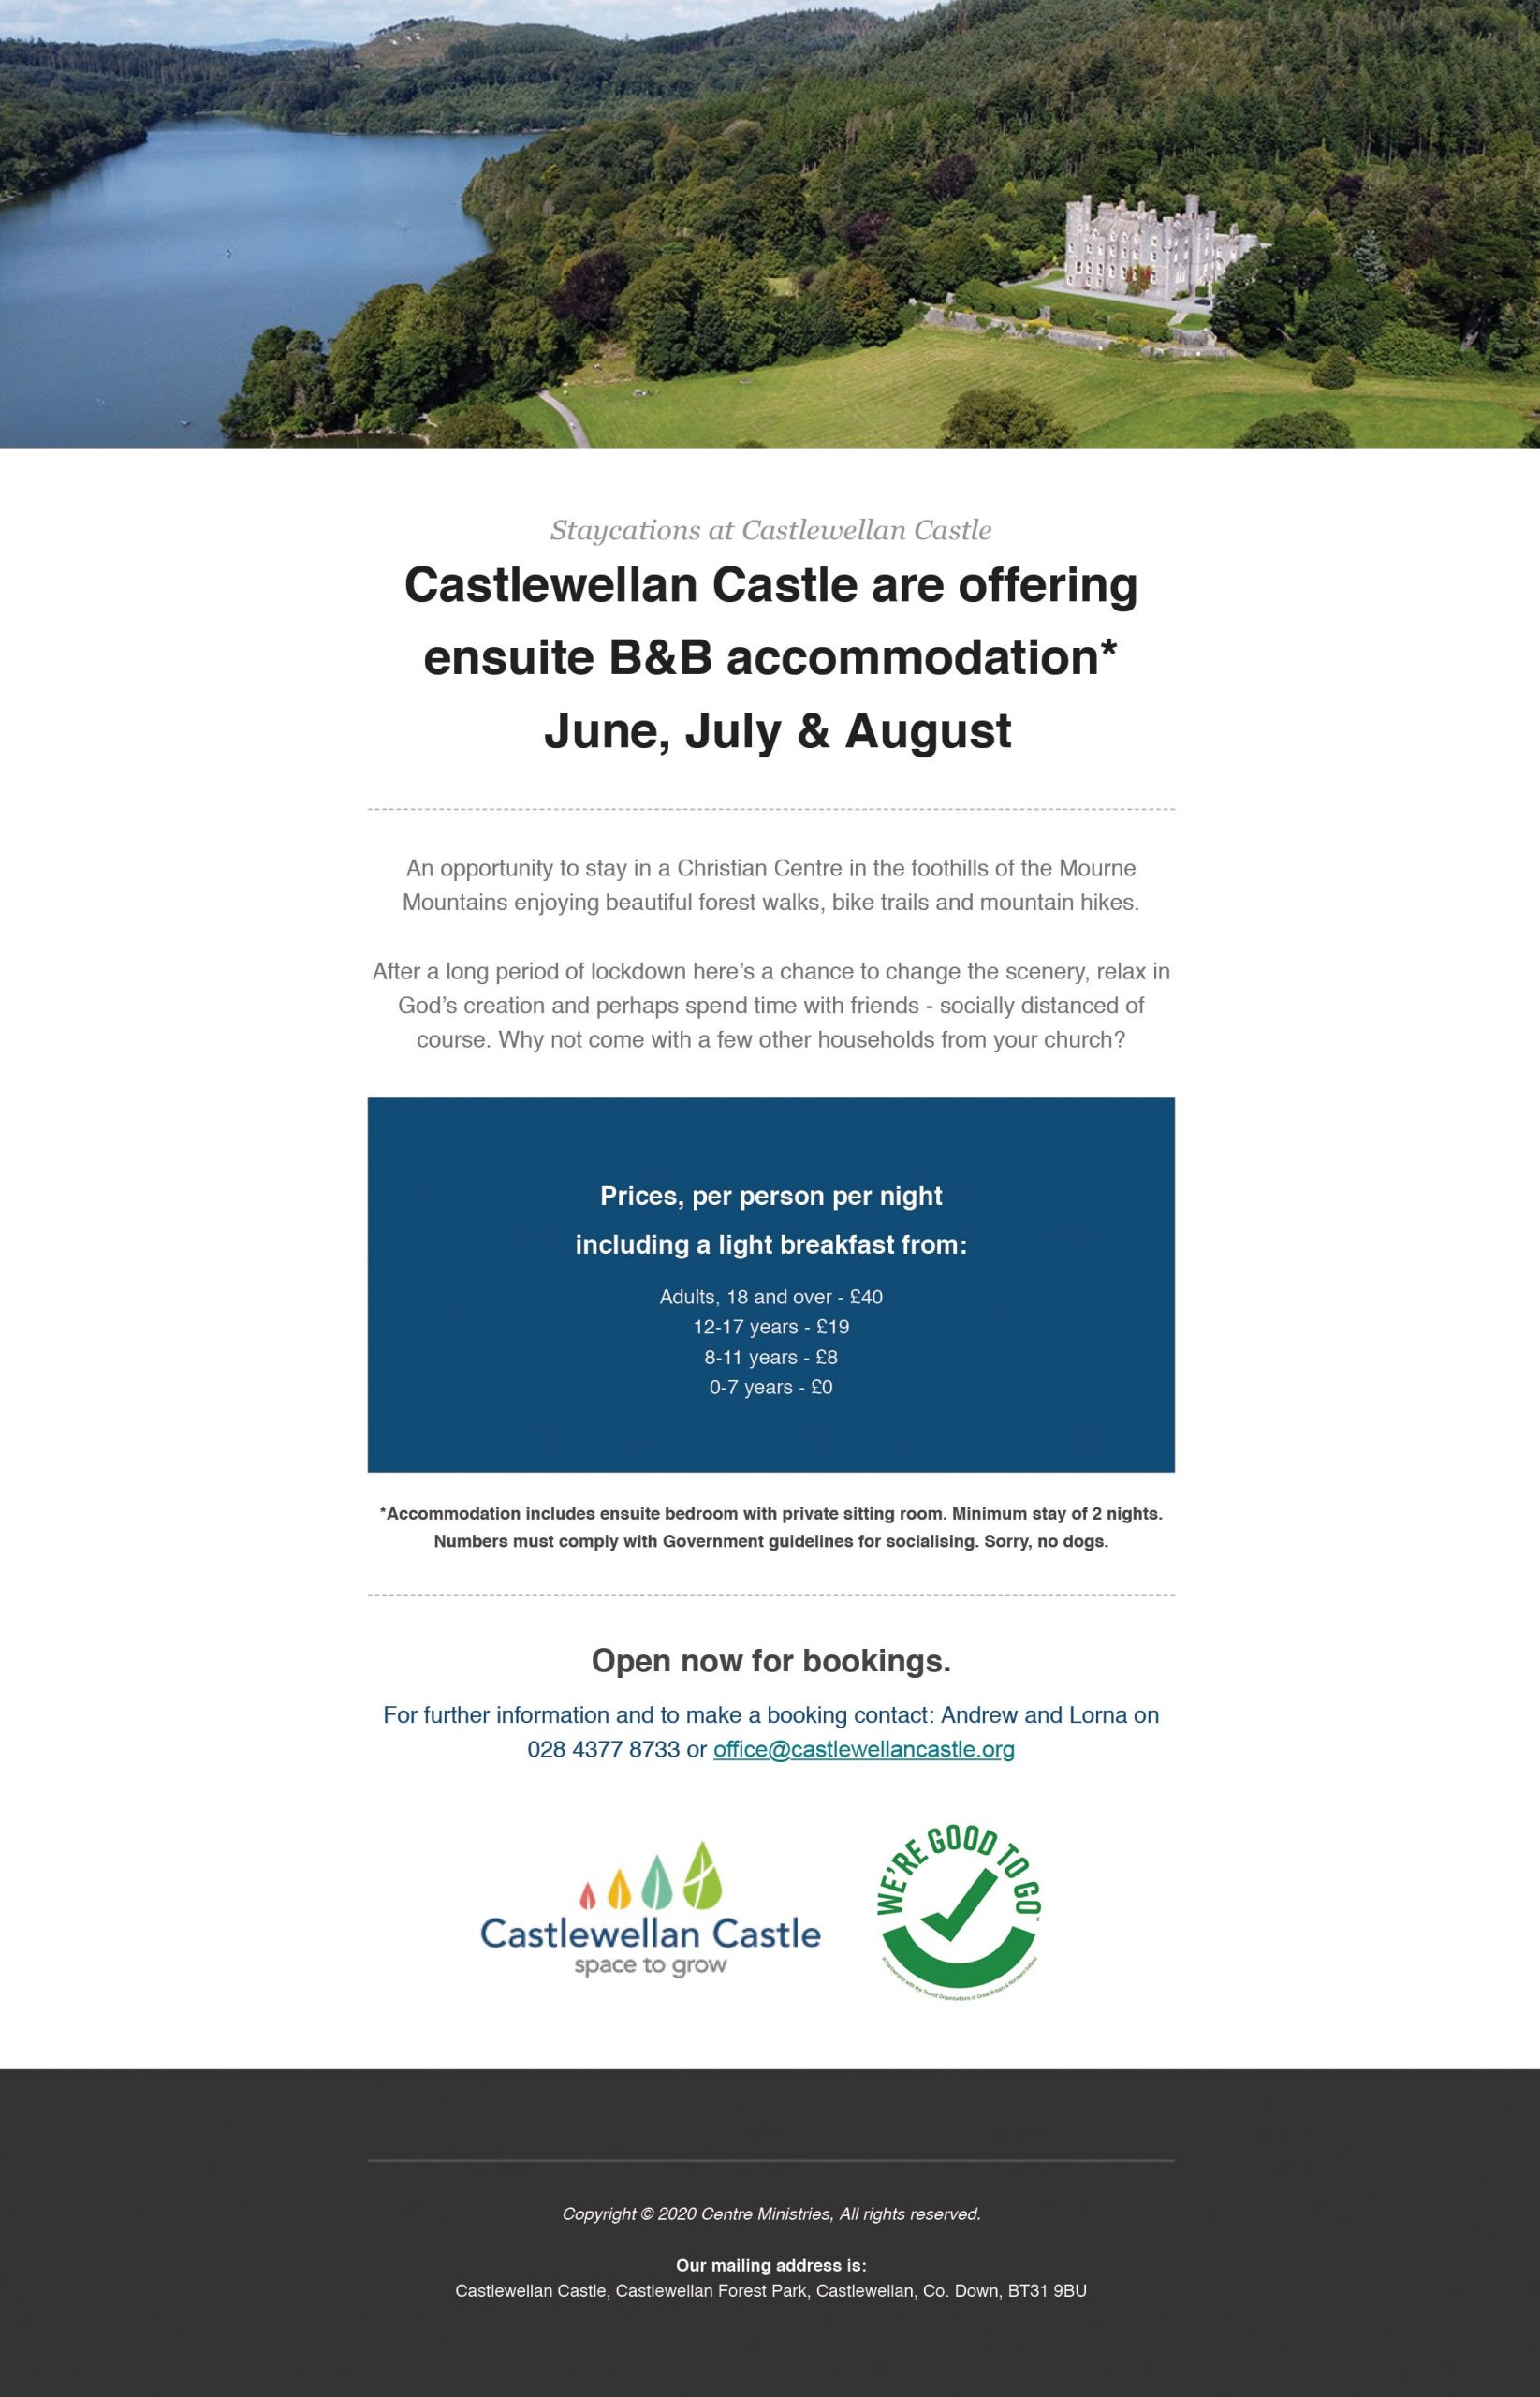 B&B stays at Castlewellan Castle This June July & August